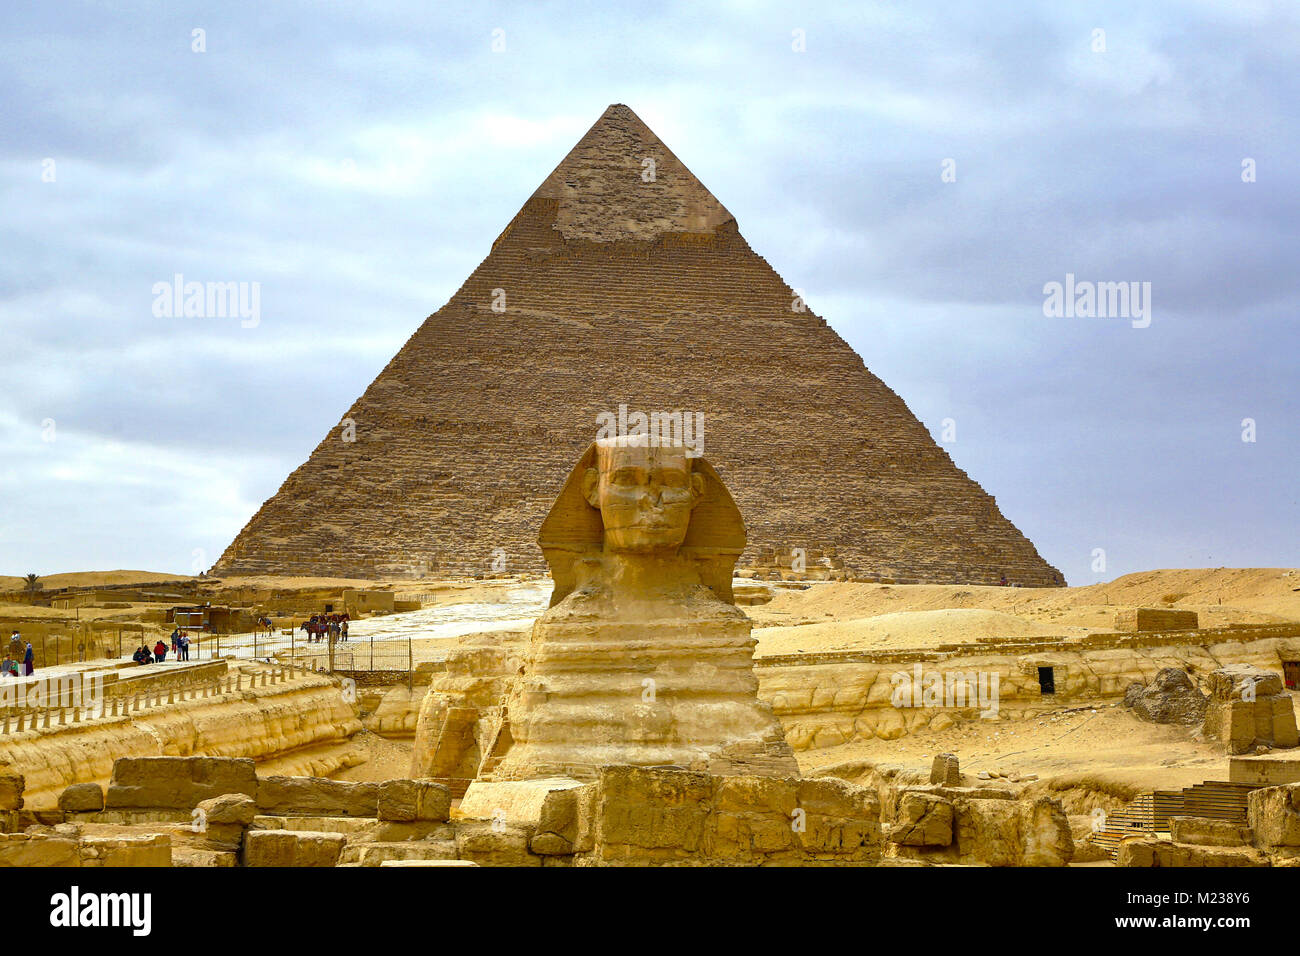 The Great Sphinx statue and the Pyramid of Khafre on the Giza Plateau, Cairo, Egypt - Stock Image